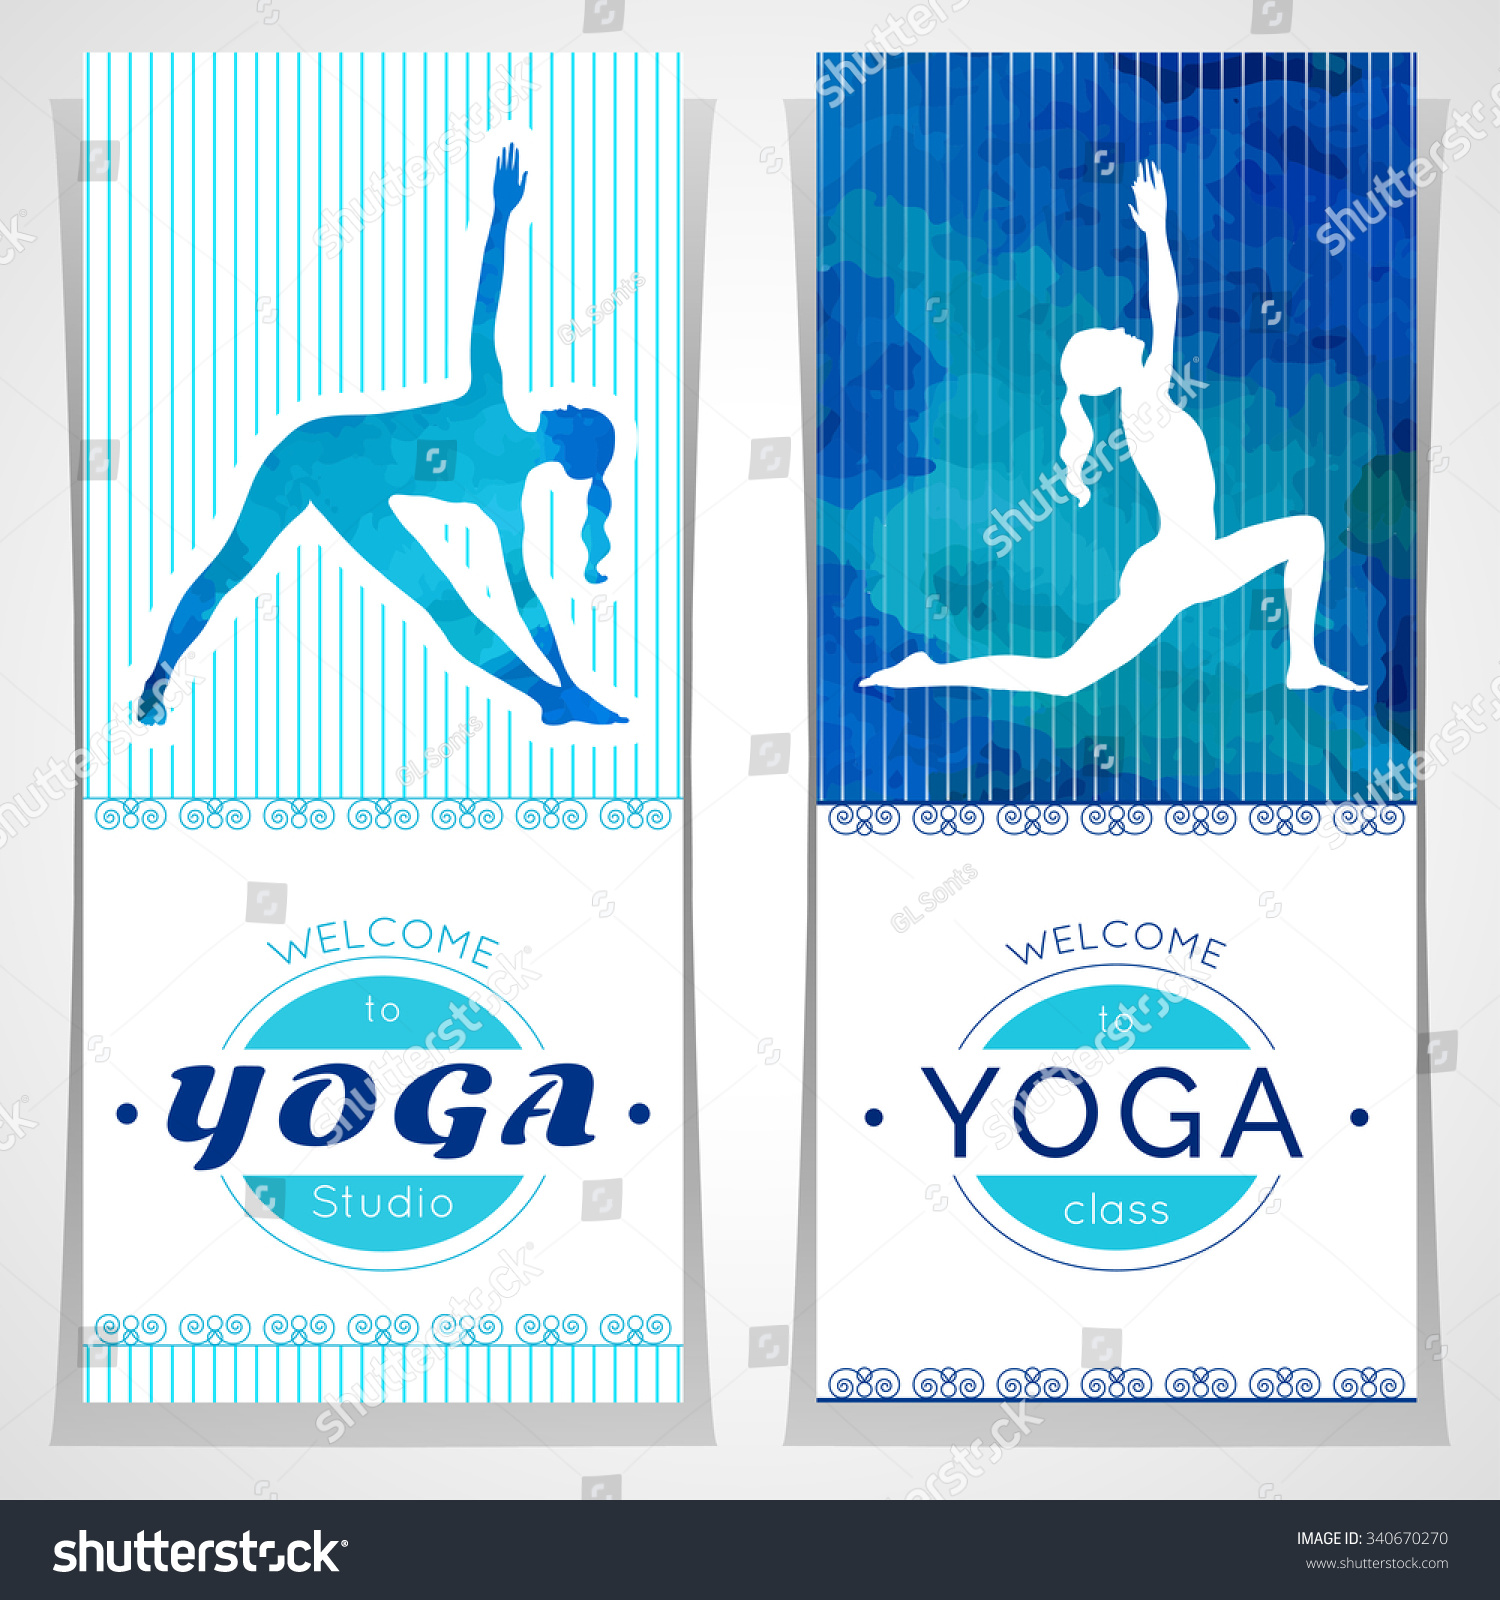 Vector Yoga Illustration Posters With Watercolor Texture And Yogi Silhouette Identity Design For